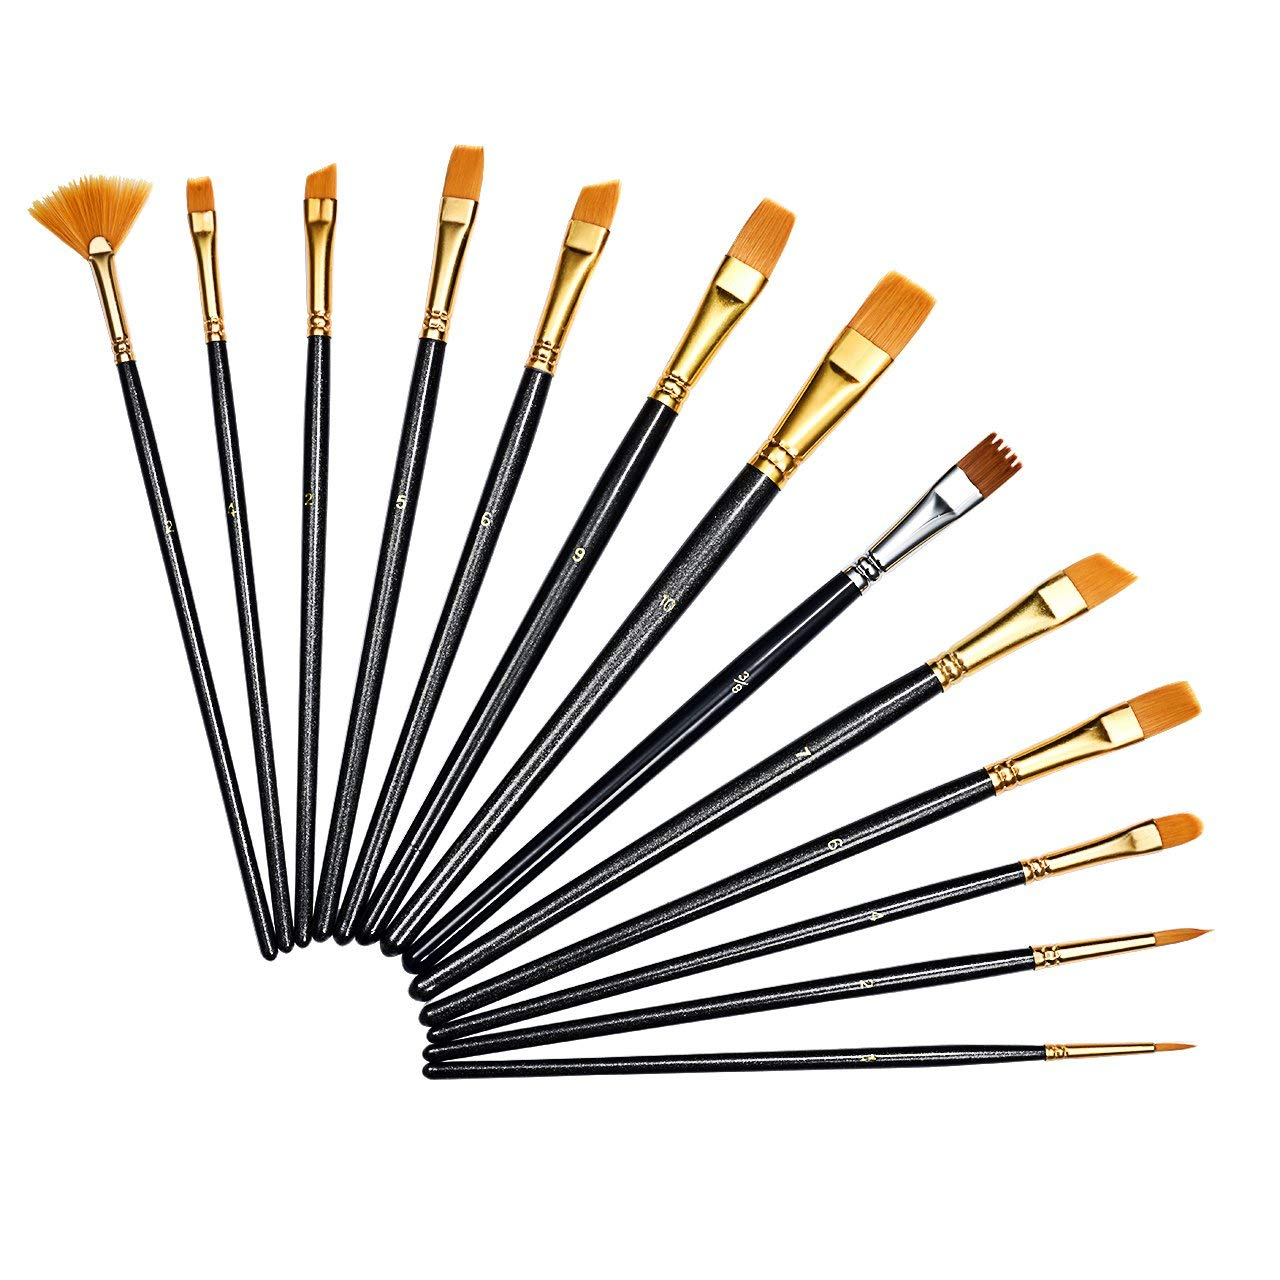 13 Pieces Paint Brushes, Atmoko Artist Paint Brushes Set for Watercolor, Acrylic & Oil Paintings, Perfect for Painting Canvas, Ceramic, Clay, Wood & Models, Great Gift for Kids, Artists and Amateurs